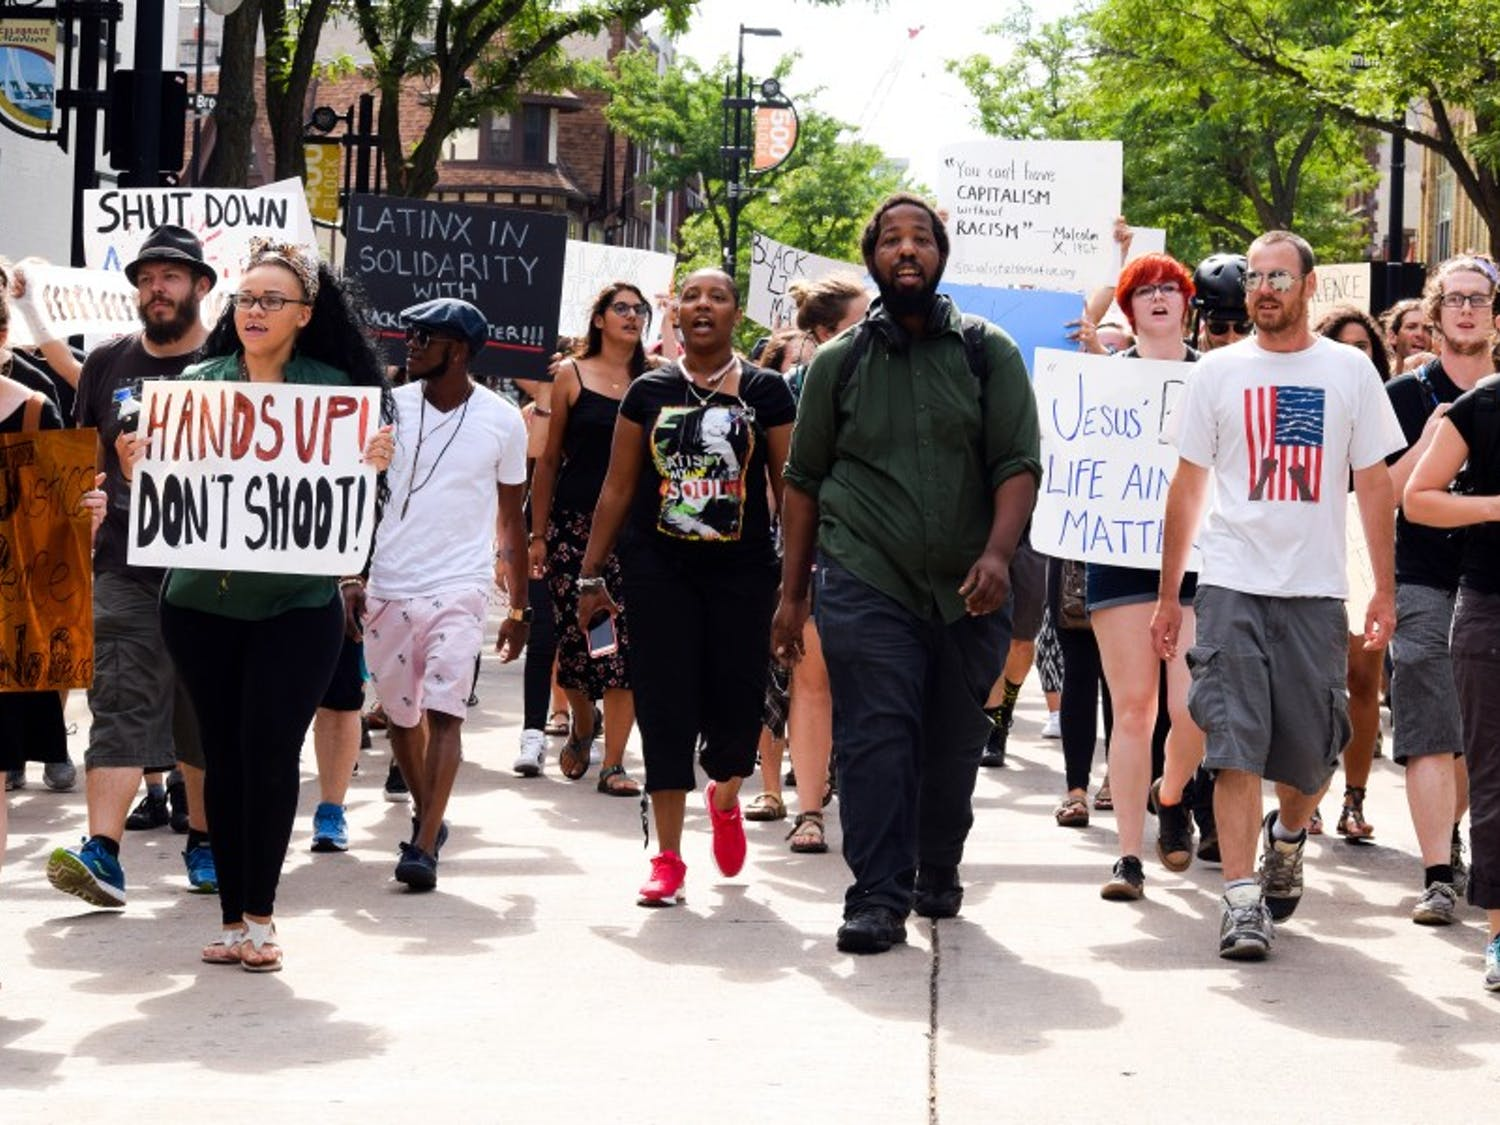 Supporters of the Black Lives Matter movement marched down State Street and around Capitol Square Sunday in response to the recent shootings in Baton Rouge, La., suburban St. Paul and Dallas.